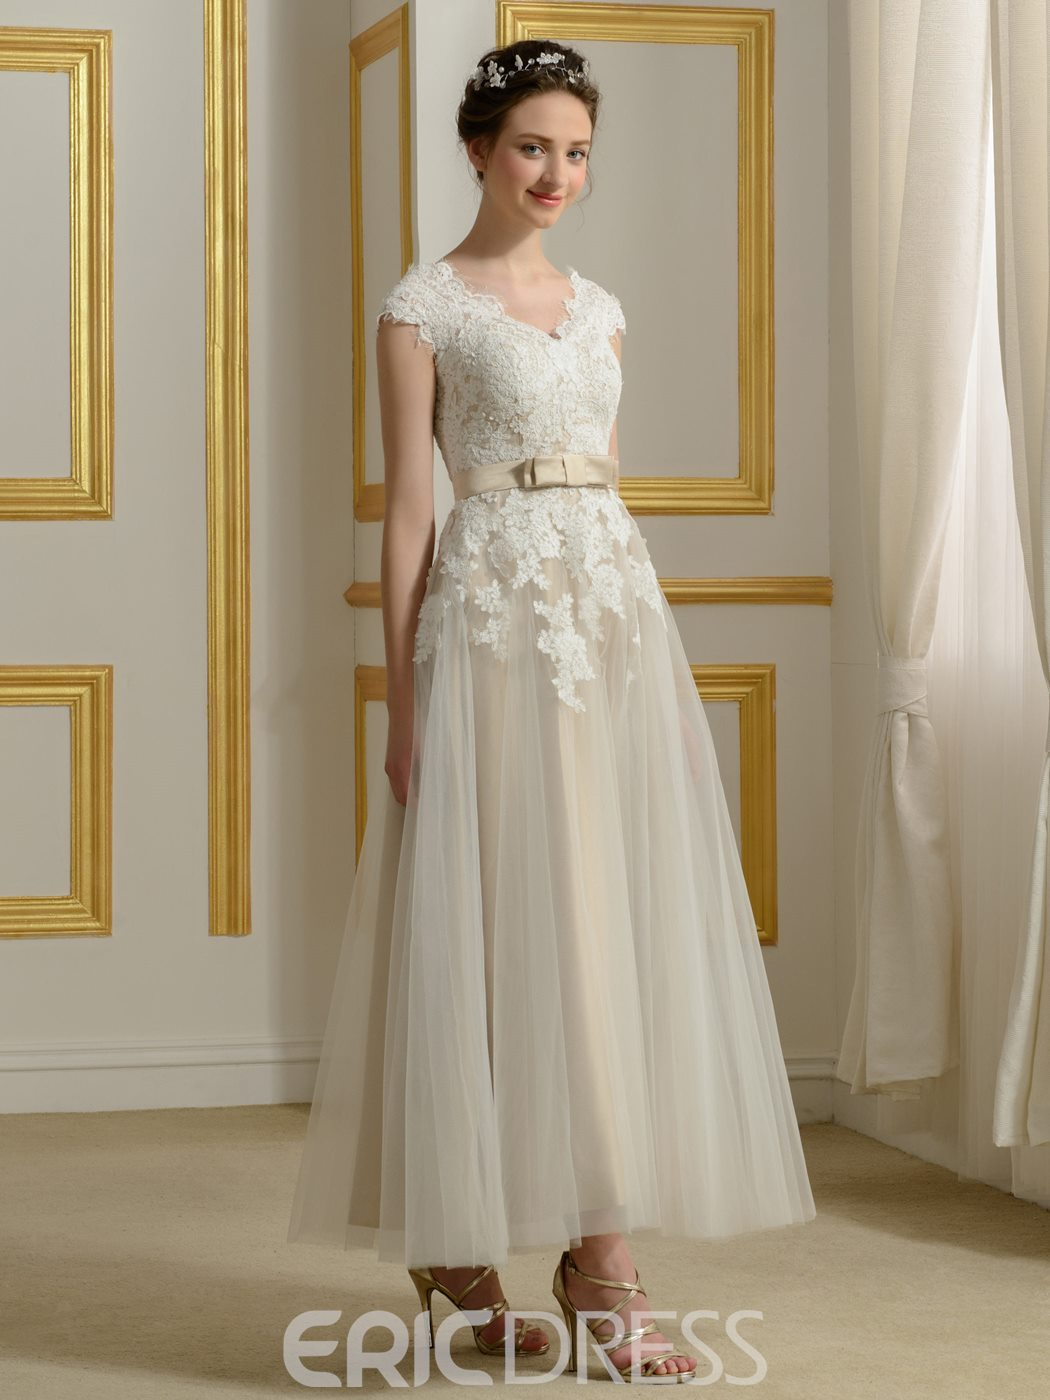 Ericdress Cap Sleeve Appliques Tea-Length Beach Wedding Dress